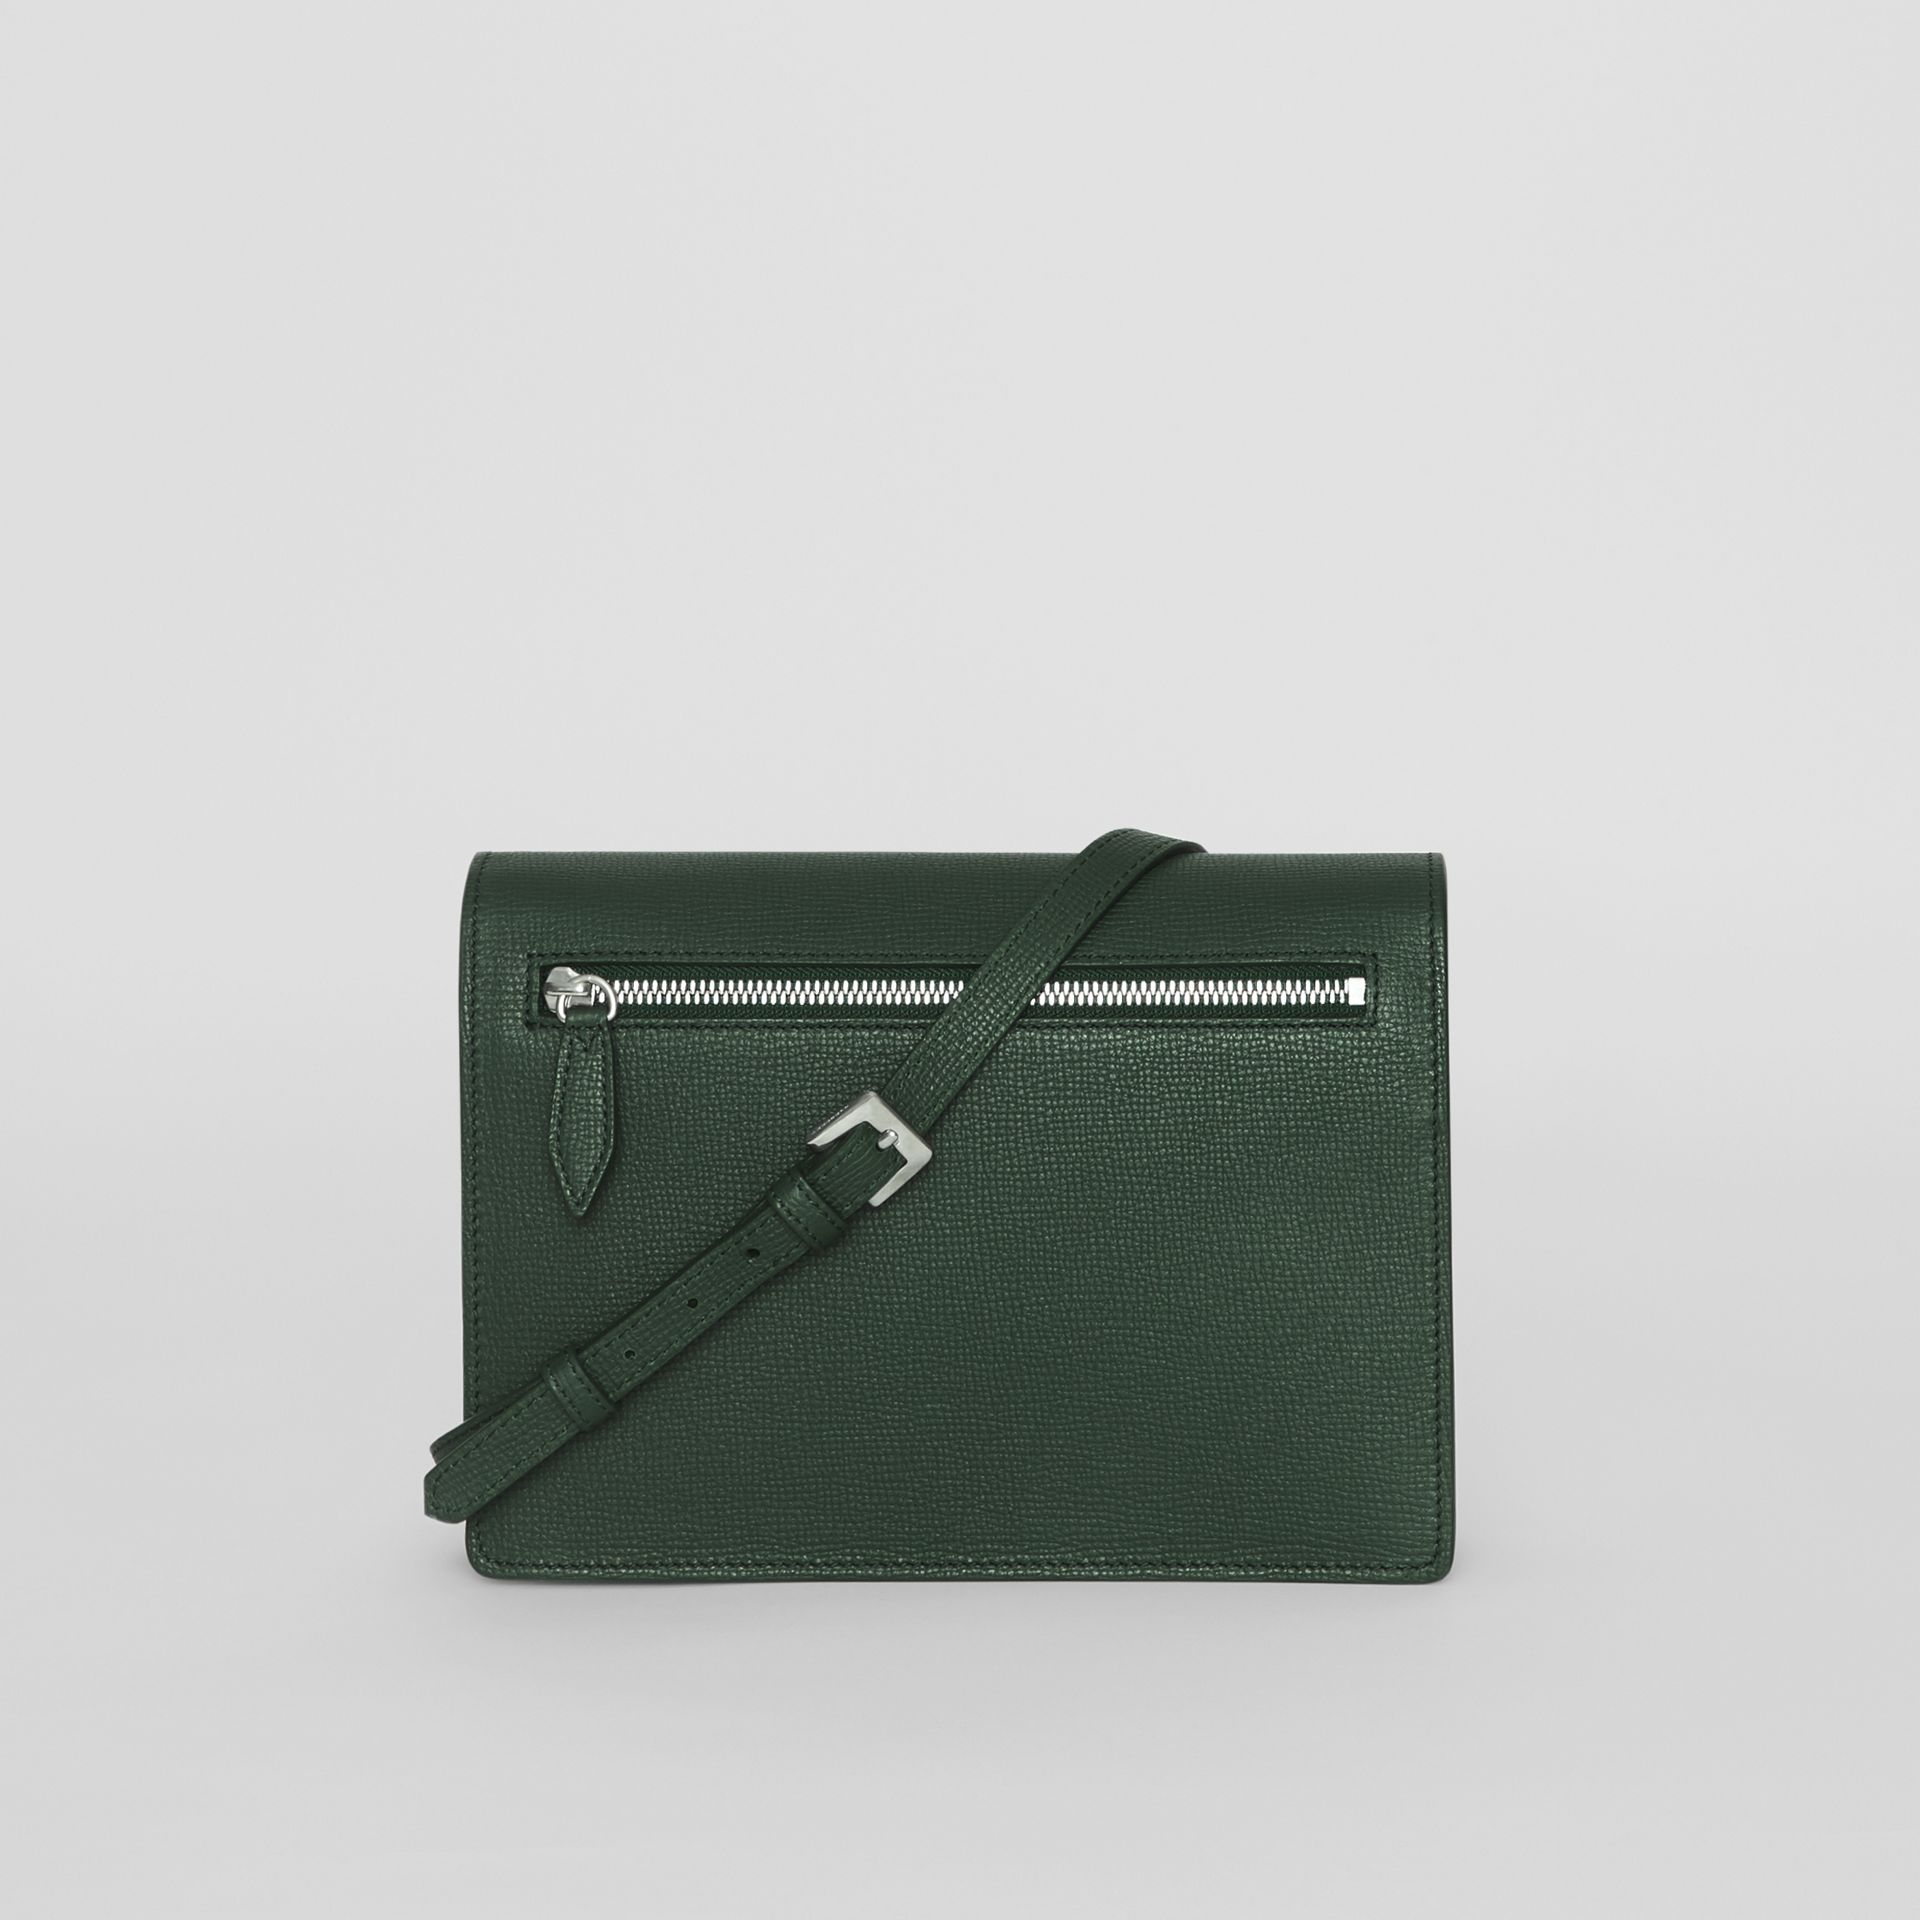 Small Vintage Check and Leather Crossbody Bag in Green - Women | Burberry Australia - gallery image 7